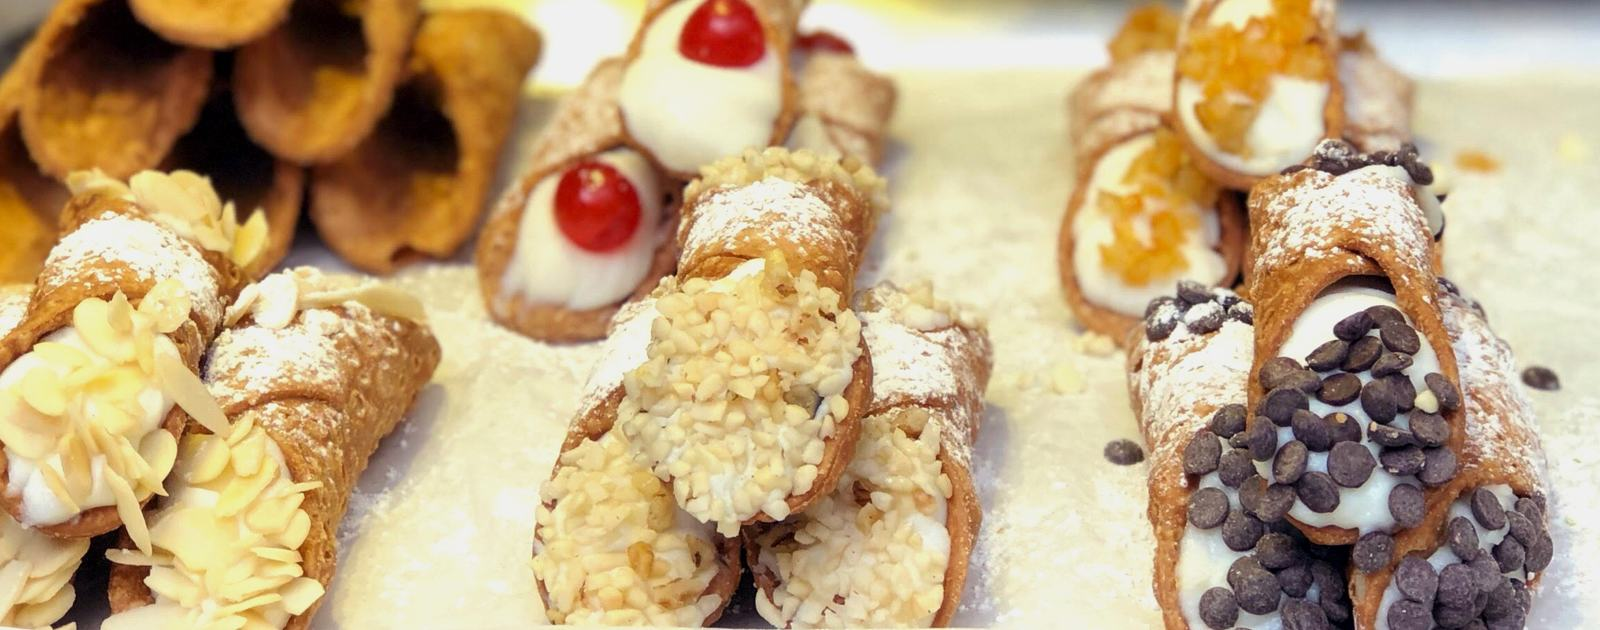 Photo of a tray of various flavoured cannoli made by Bello Gnocco at Southbank Centre Food Market